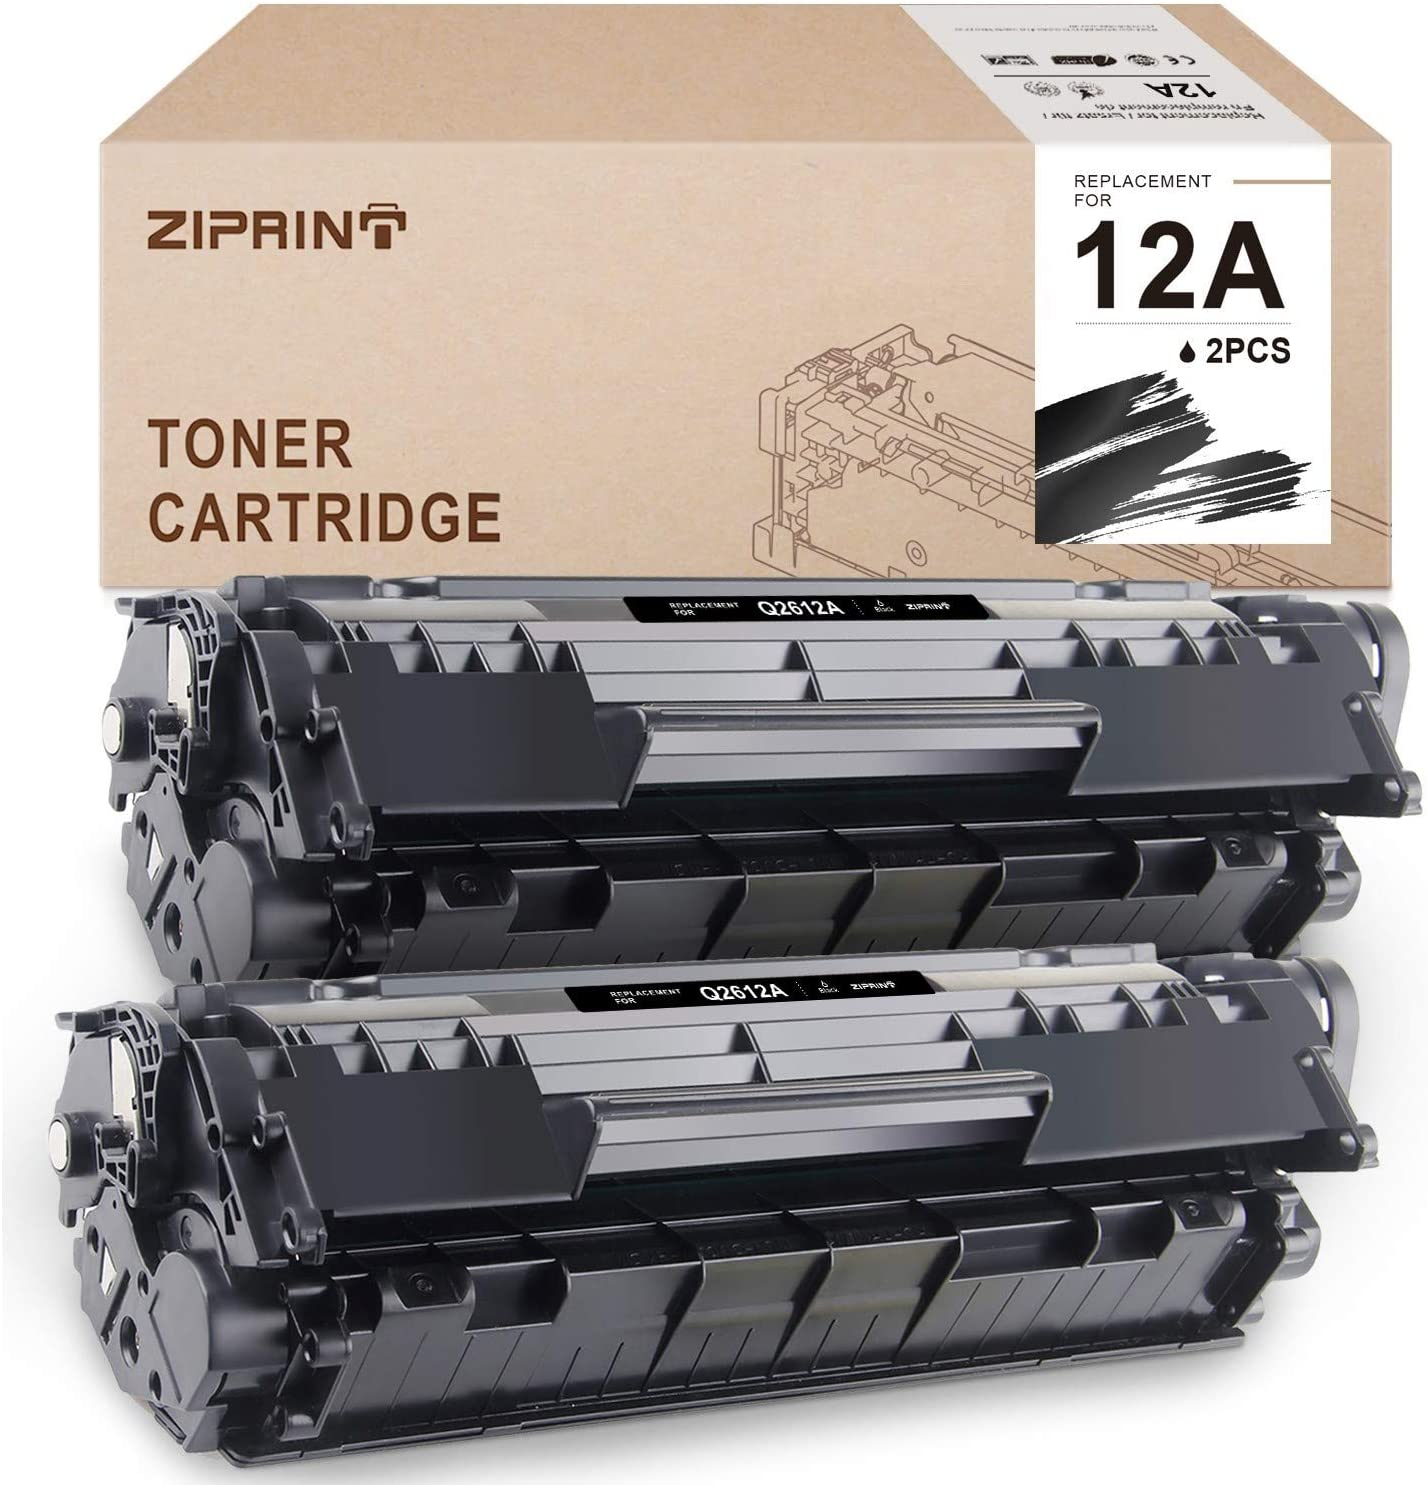 V4INK 1 Pack Compatible Q2612A CRG-104 Toner Cartridge For 12A Q2612A For HP Laserjet Printer 1010 1012 1015 1018 1020 1022 1022n 1022nw 3015 M1005 M1319F